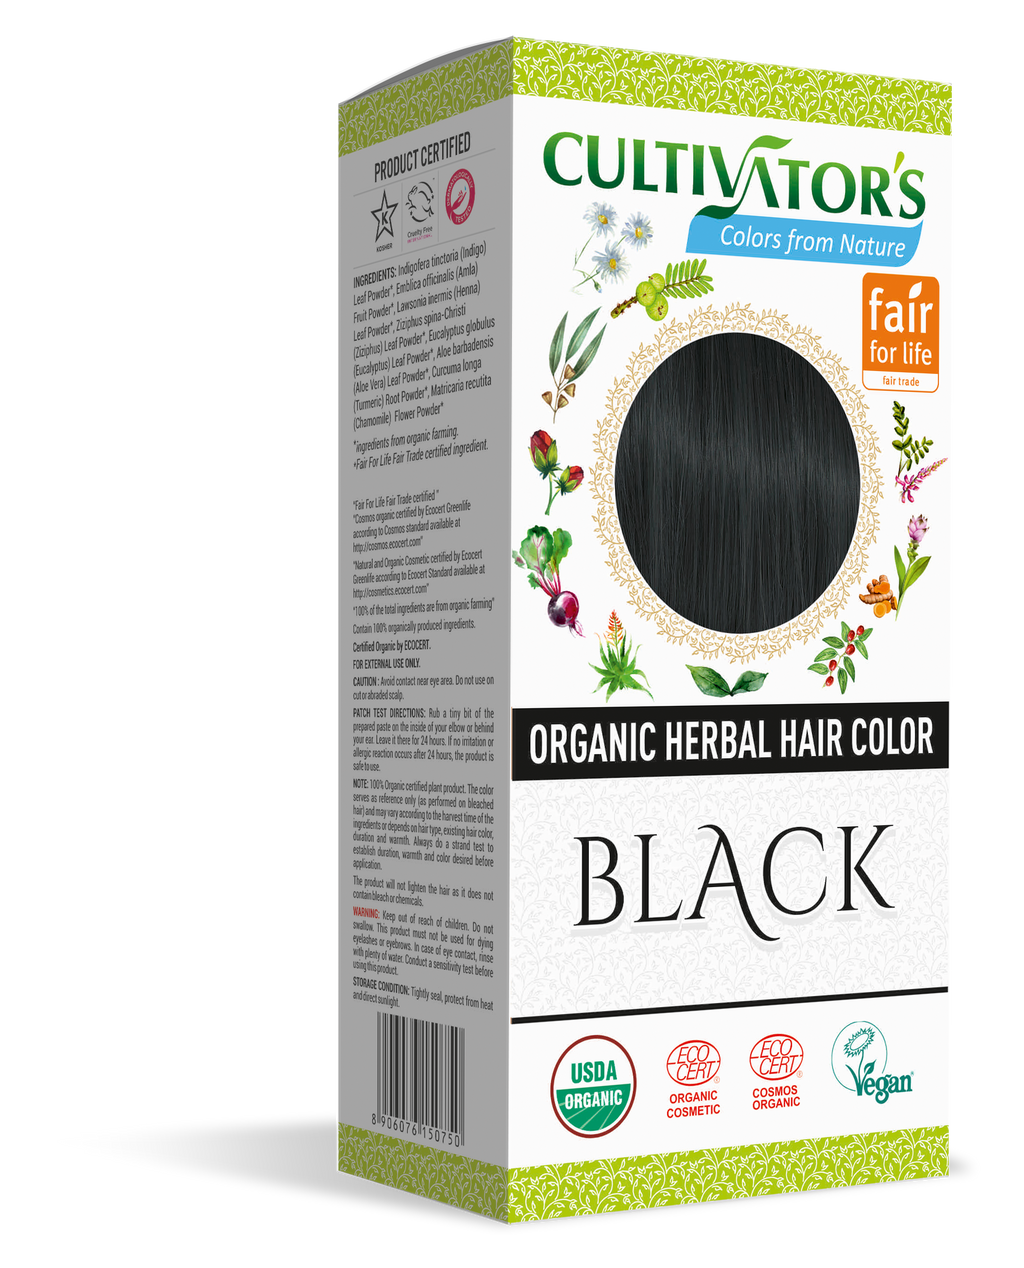 Cultivator's Organic Herbal Hair Color Black - Shop Now Online